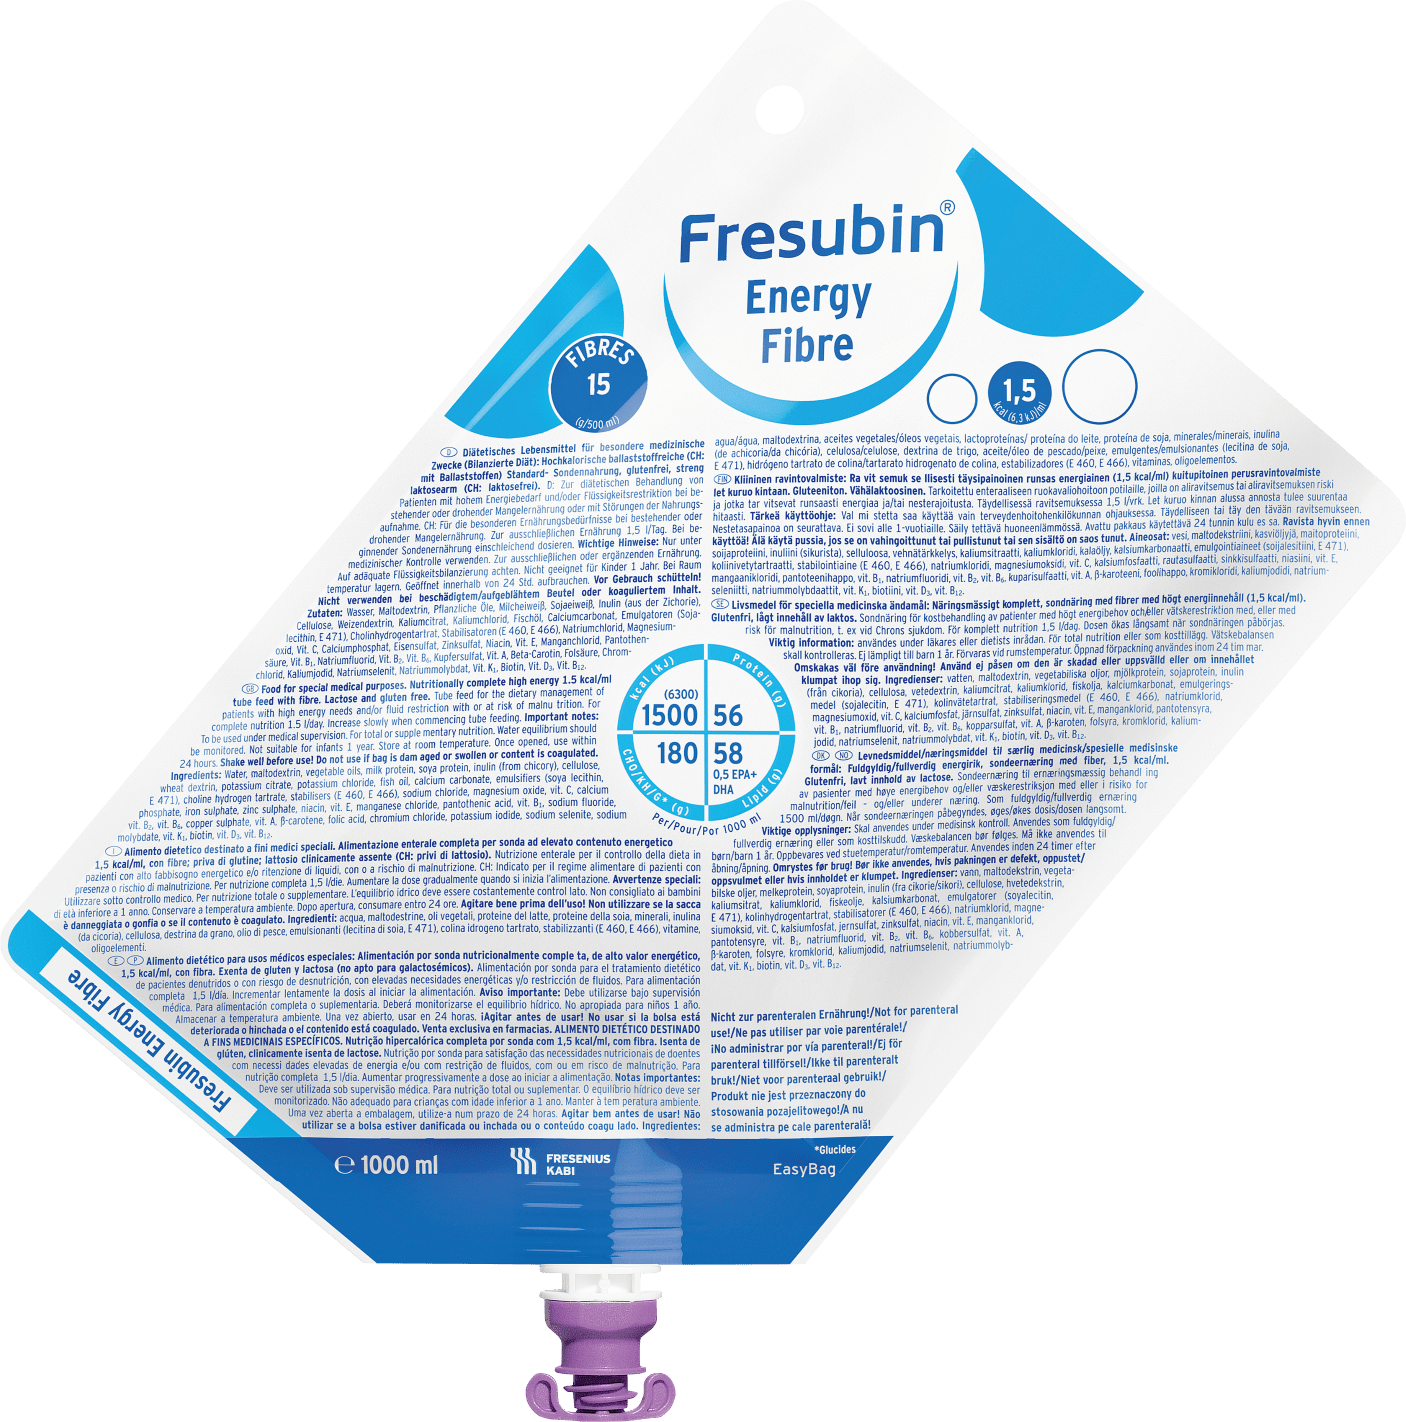 Fresubin_Energy_Fibre_Int_1000ml-2